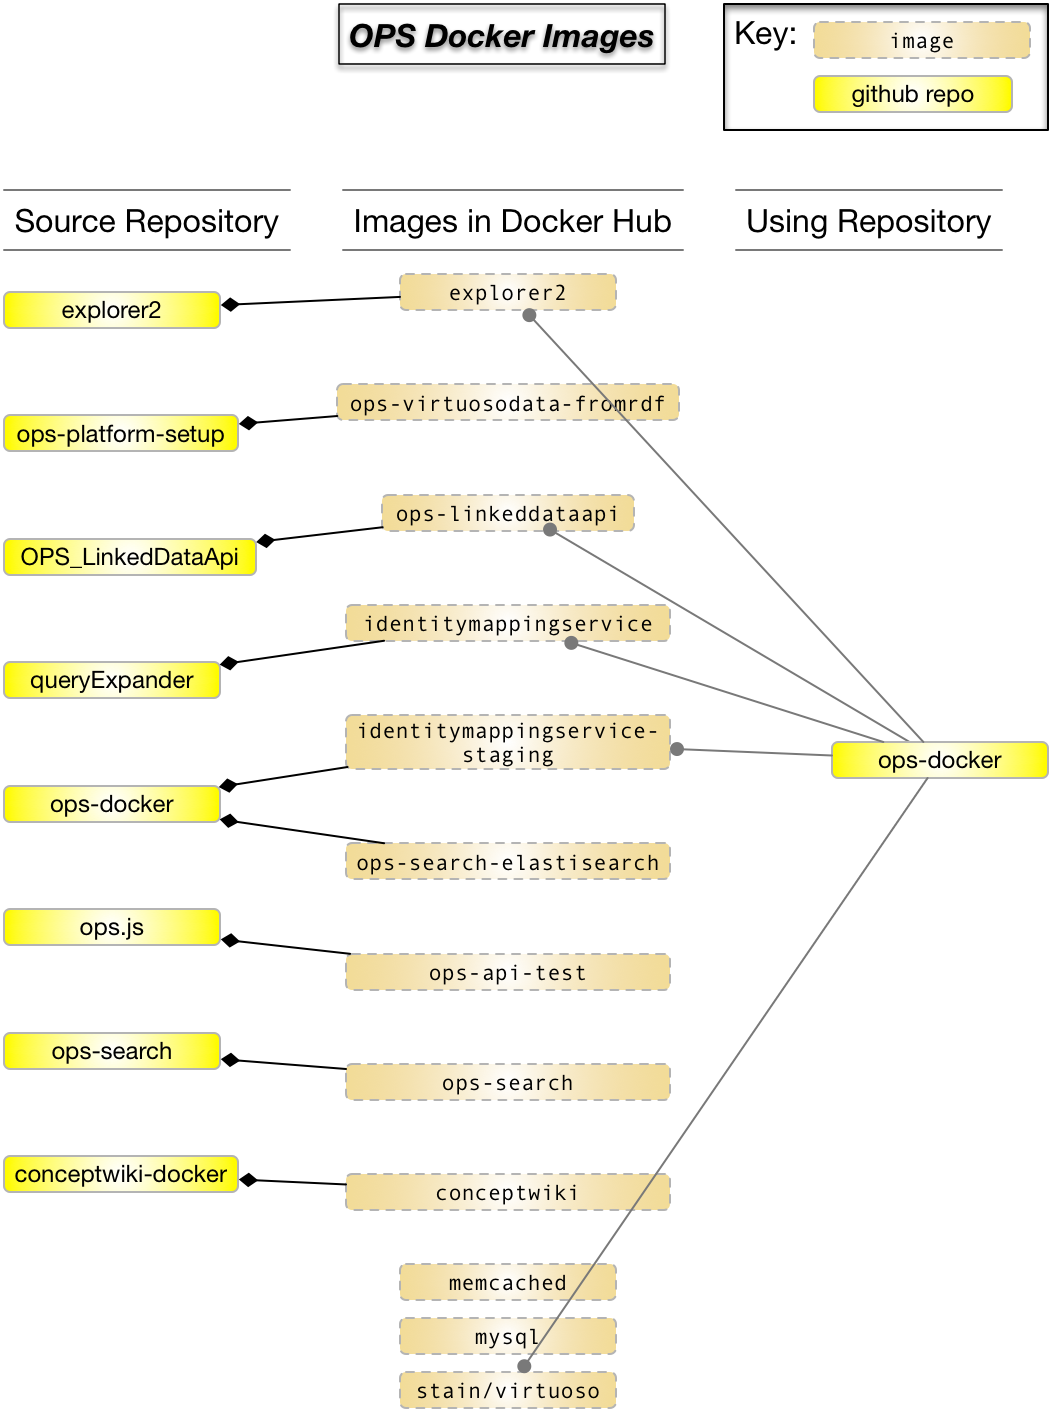 Diagram of images in docker hub.